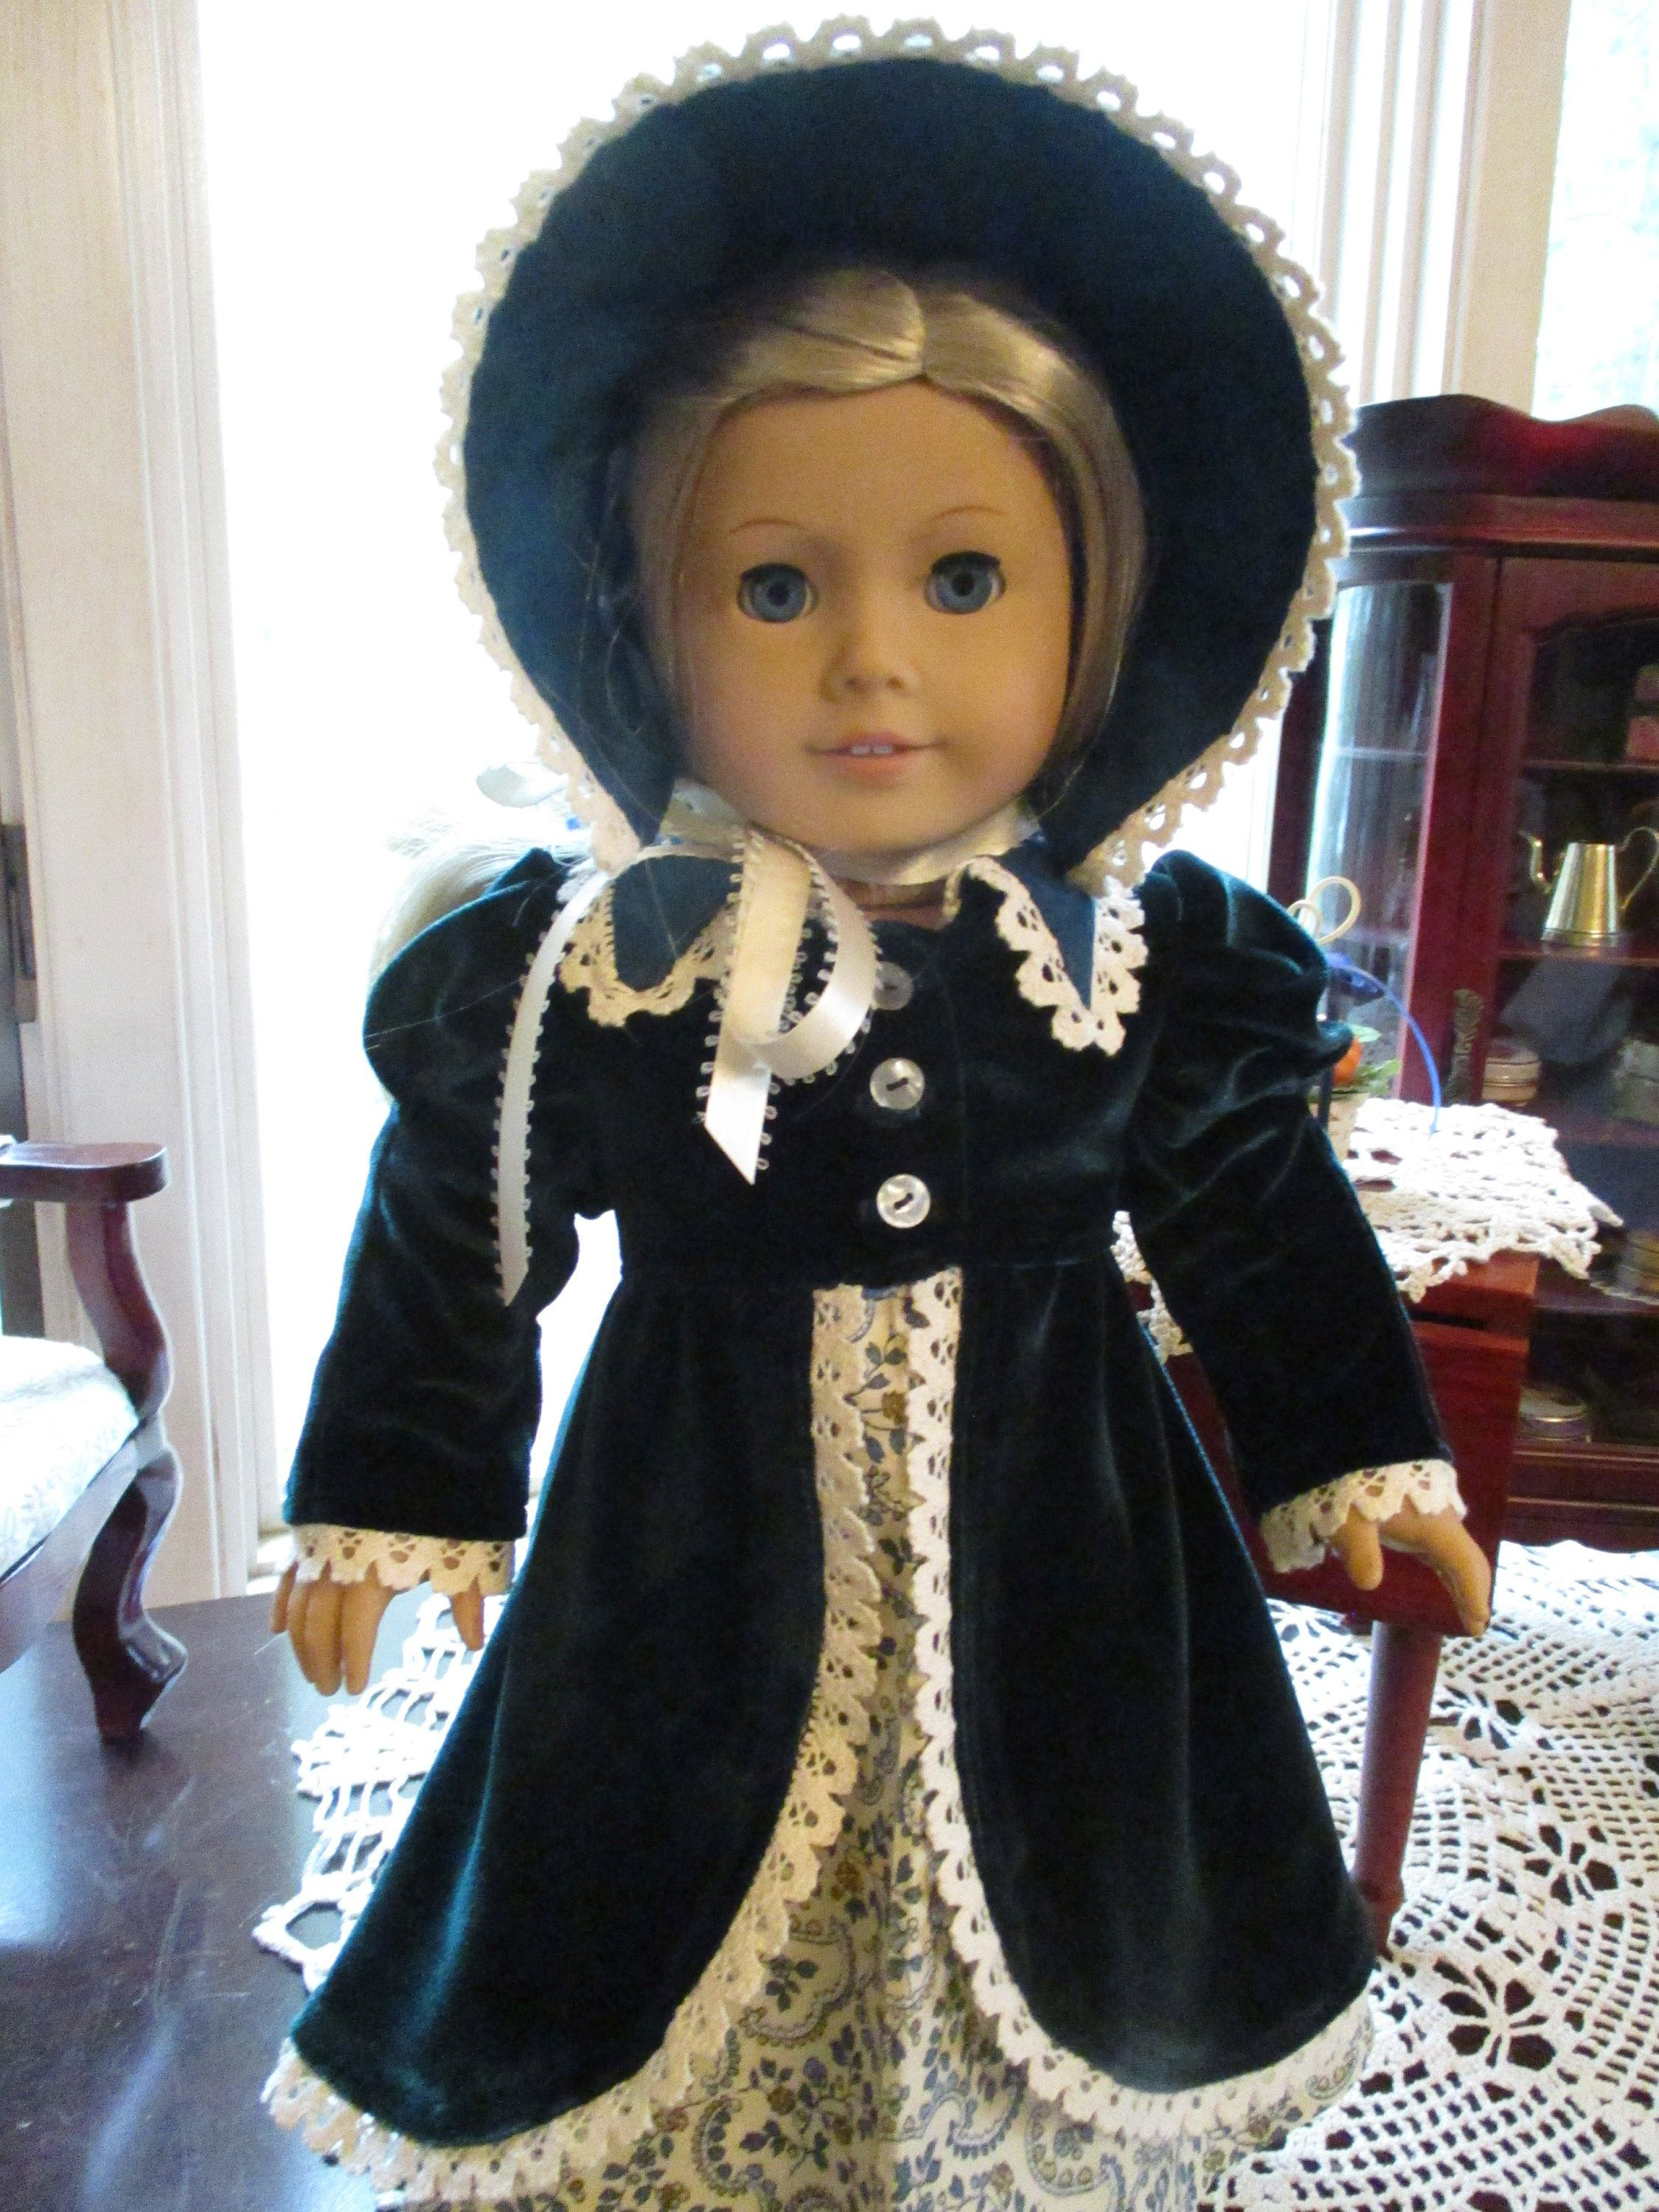 Regency Era Historic Doll Coat and Bonnet to fit your 18 American Girl Doll in Blue Velvet by Emmakate0 on Etsy #historicaldollclothes